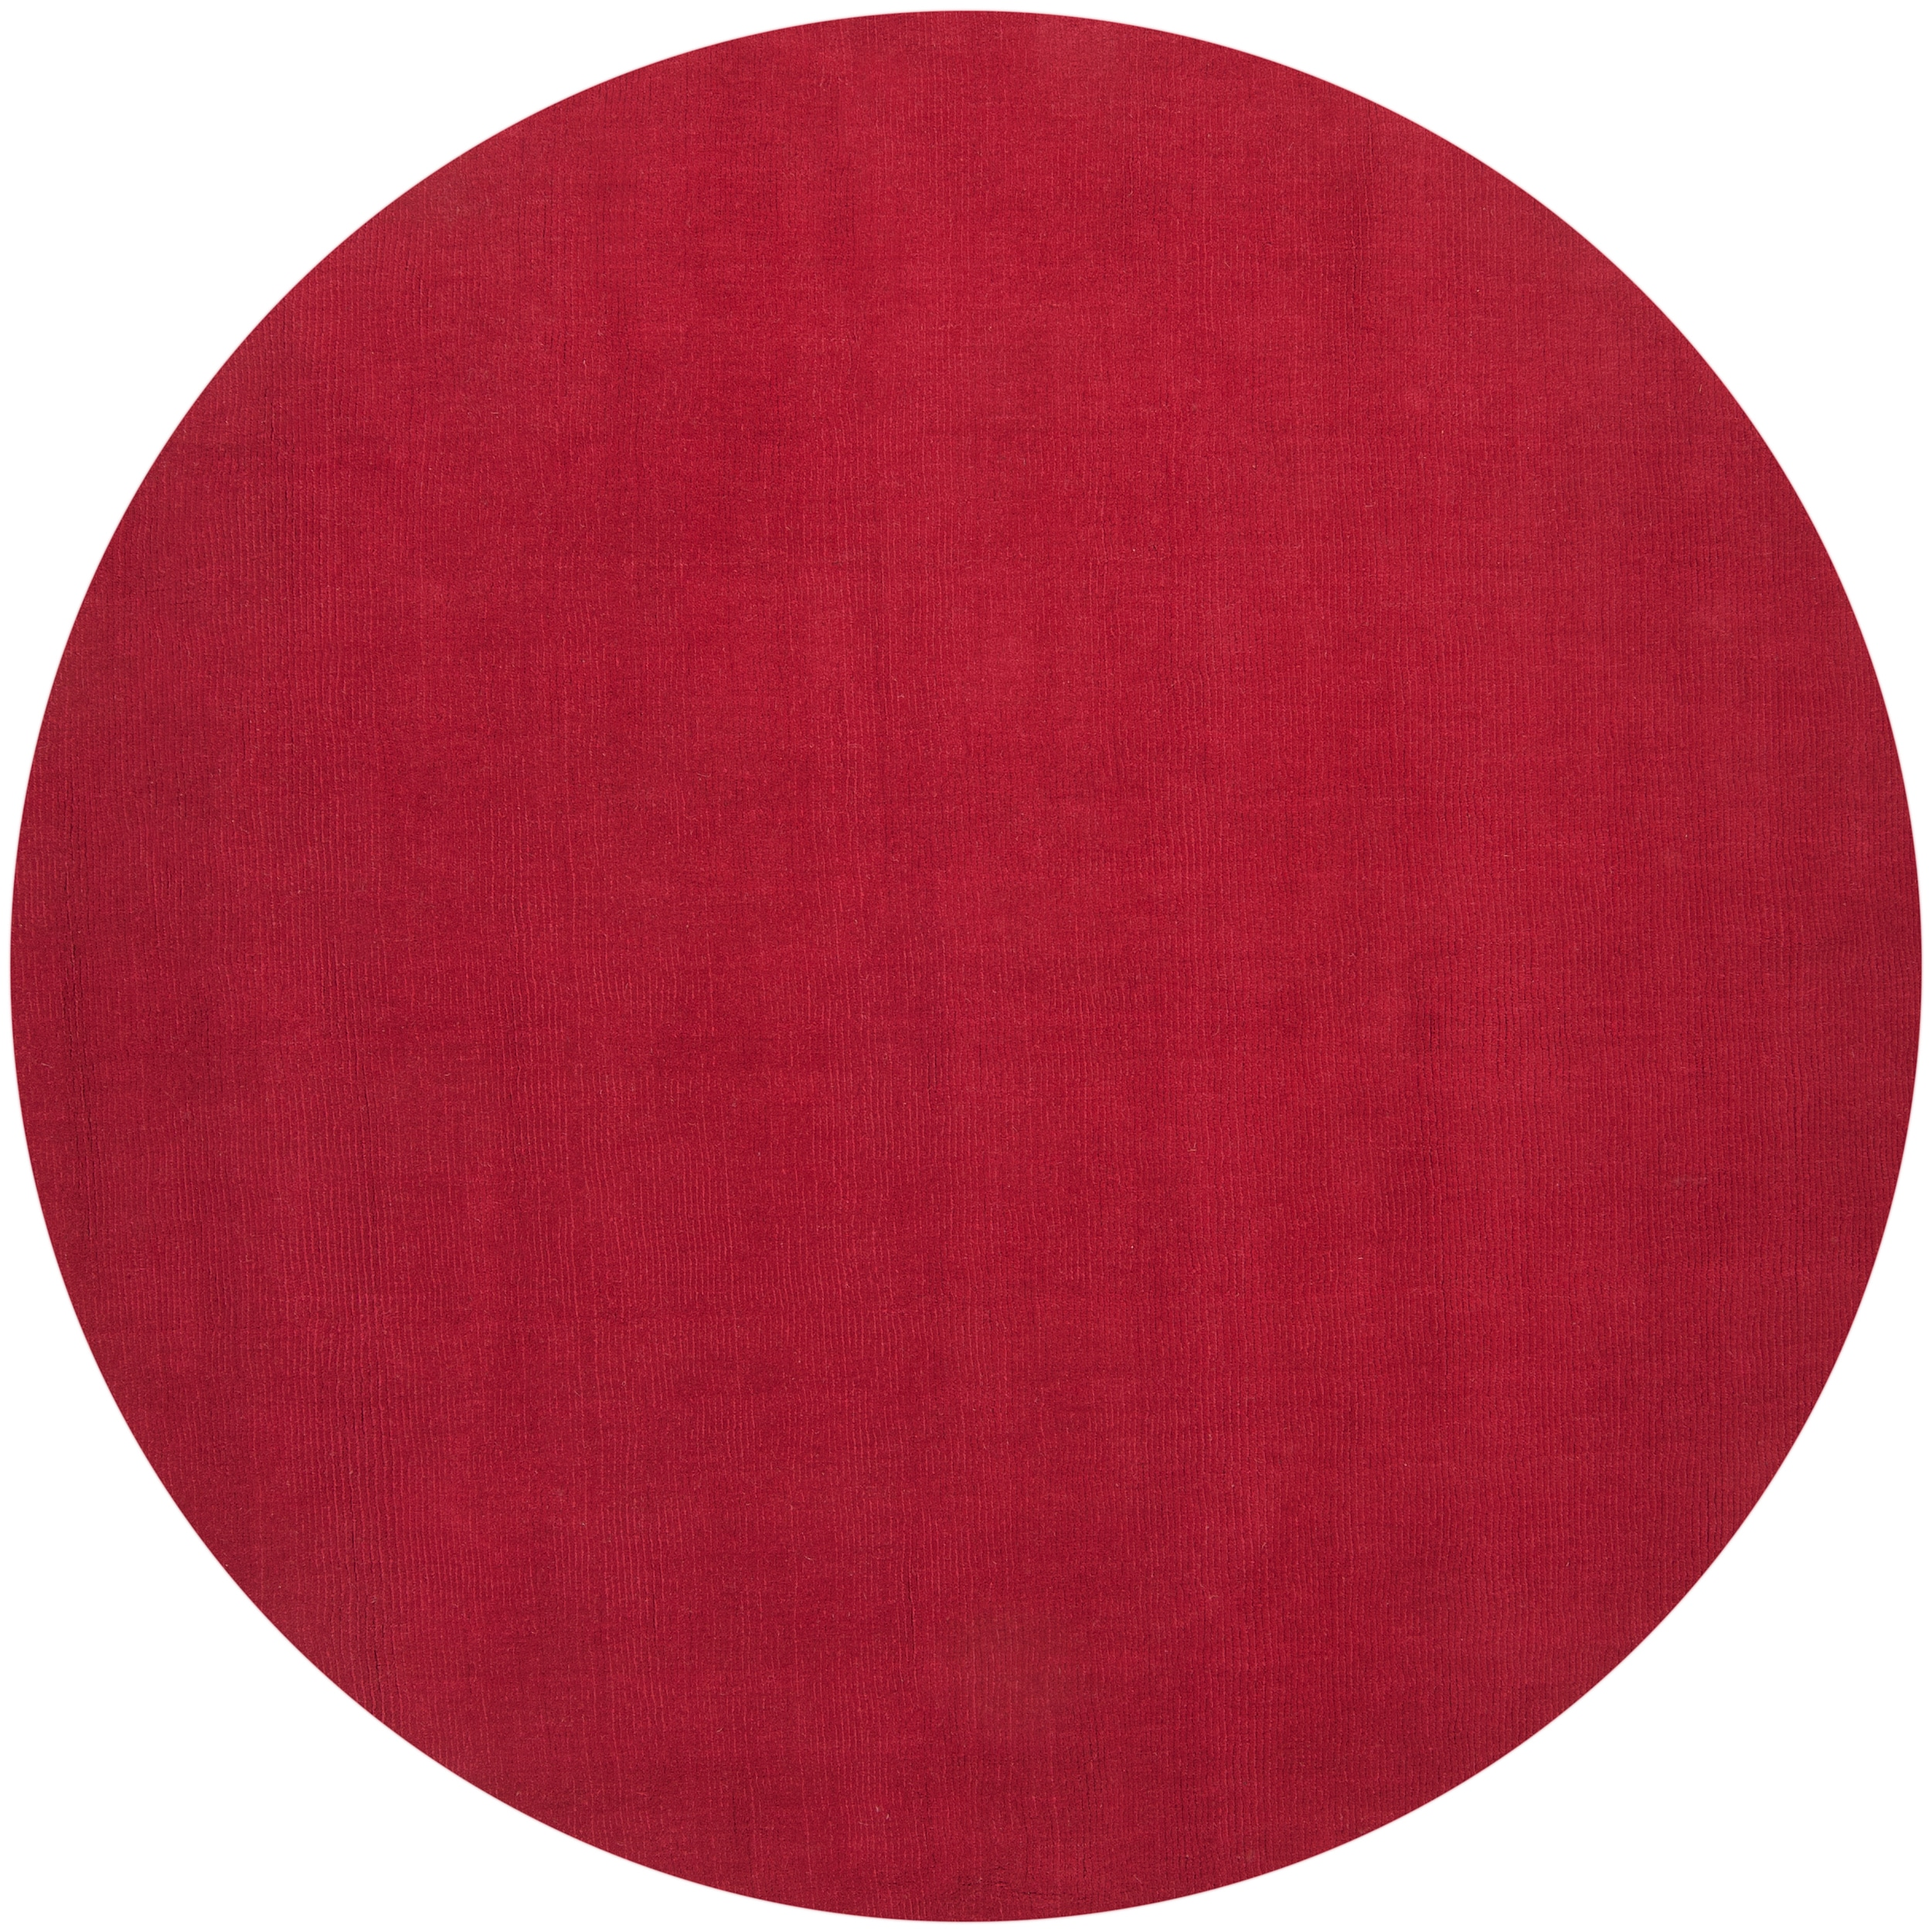 Hand Crafted Red Solid Casual Vaga Wool Area Rug 6 Round